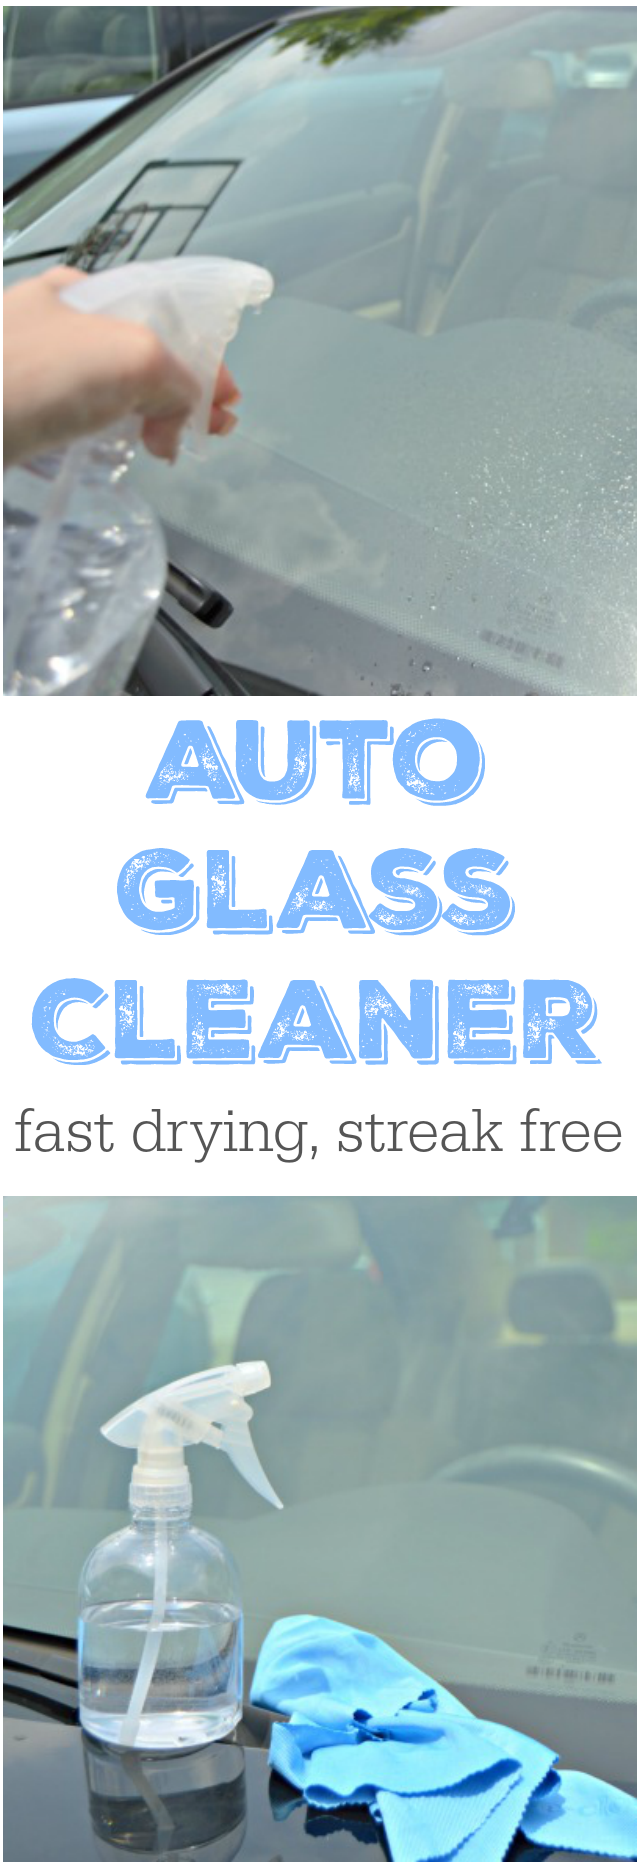 How To Make Auto Glass Cleaner - Mom 4 Real